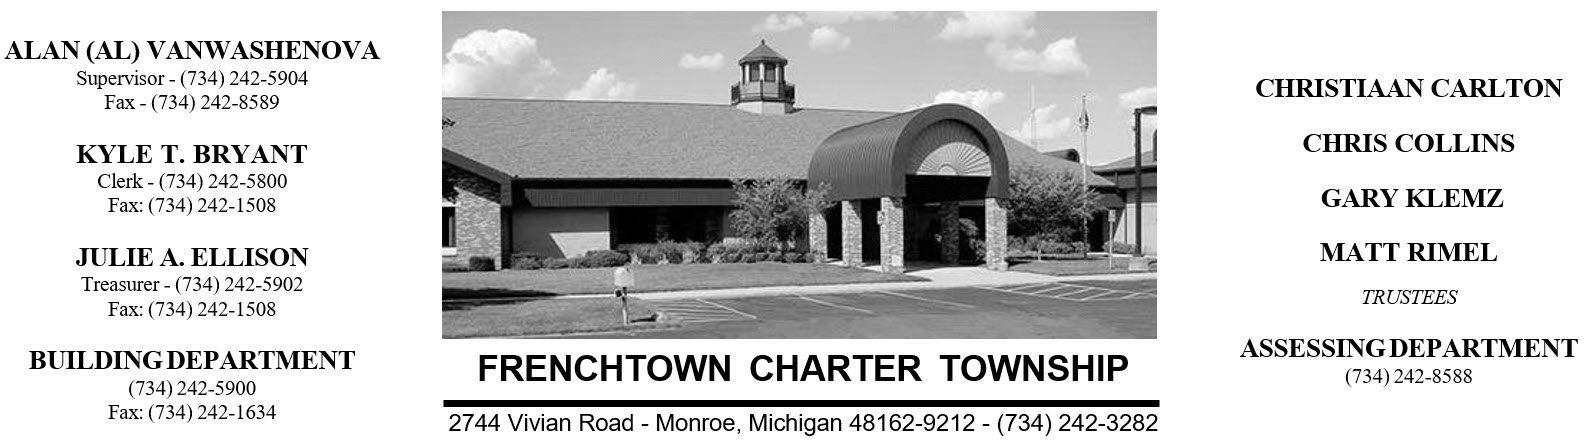 Frenchtown Charter Township Letterhead